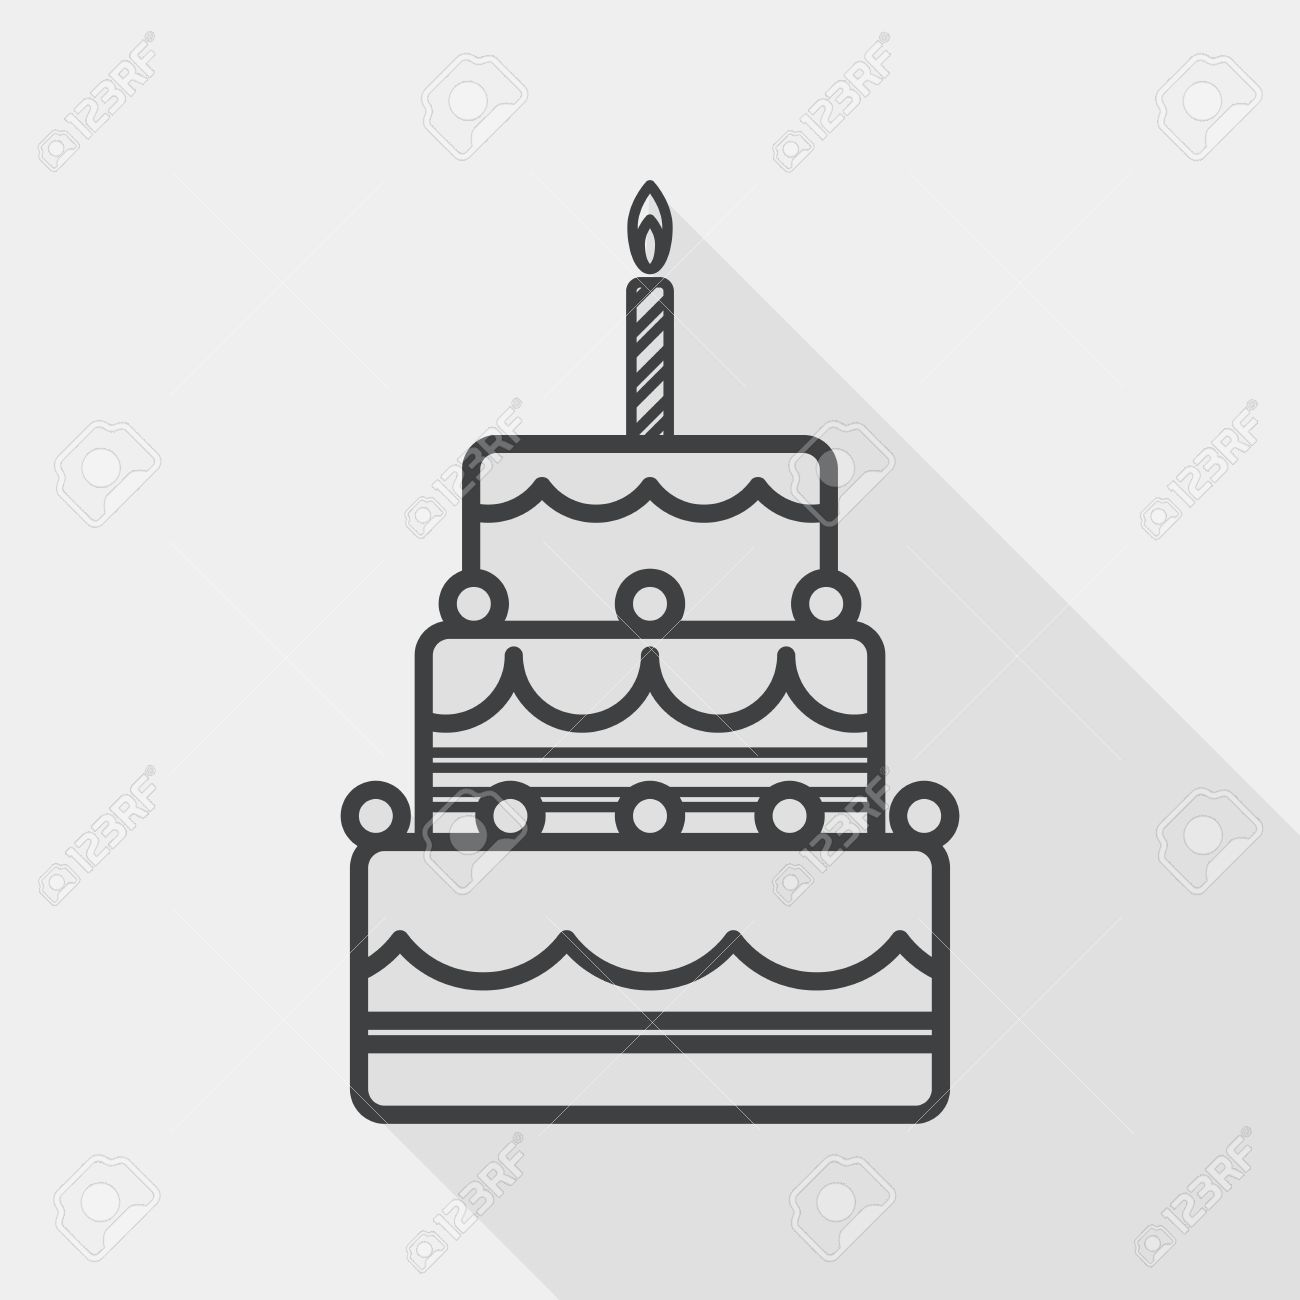 birthday cake flat icon with long shadow, line icon - 39505359